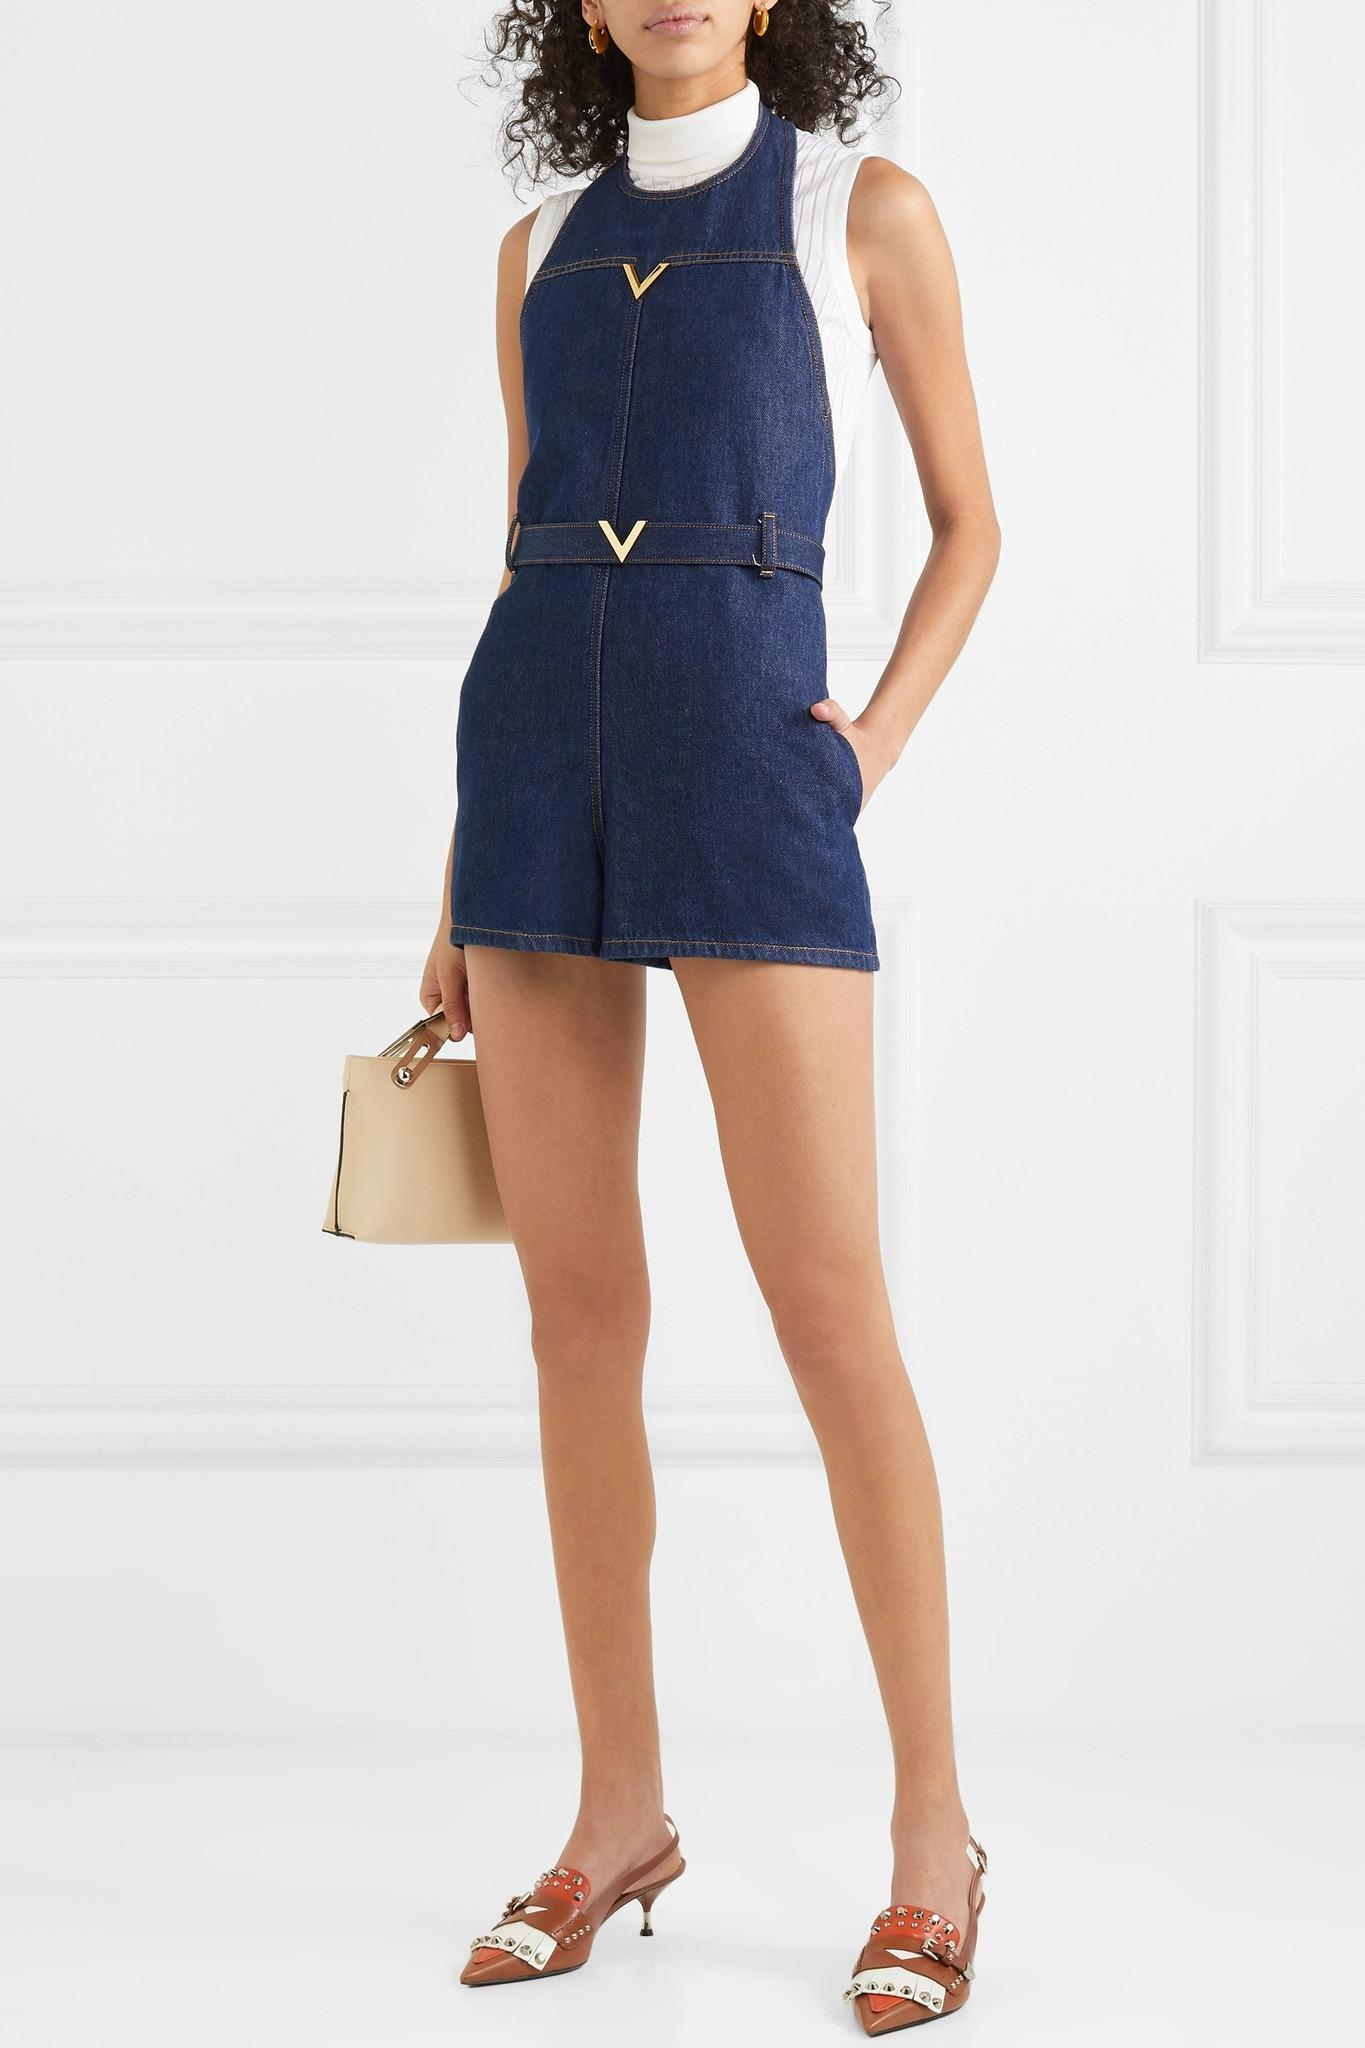 554181e301 Valentino - Blue Embellished Denim Halterneck Playsuit - Lyst. View  fullscreen